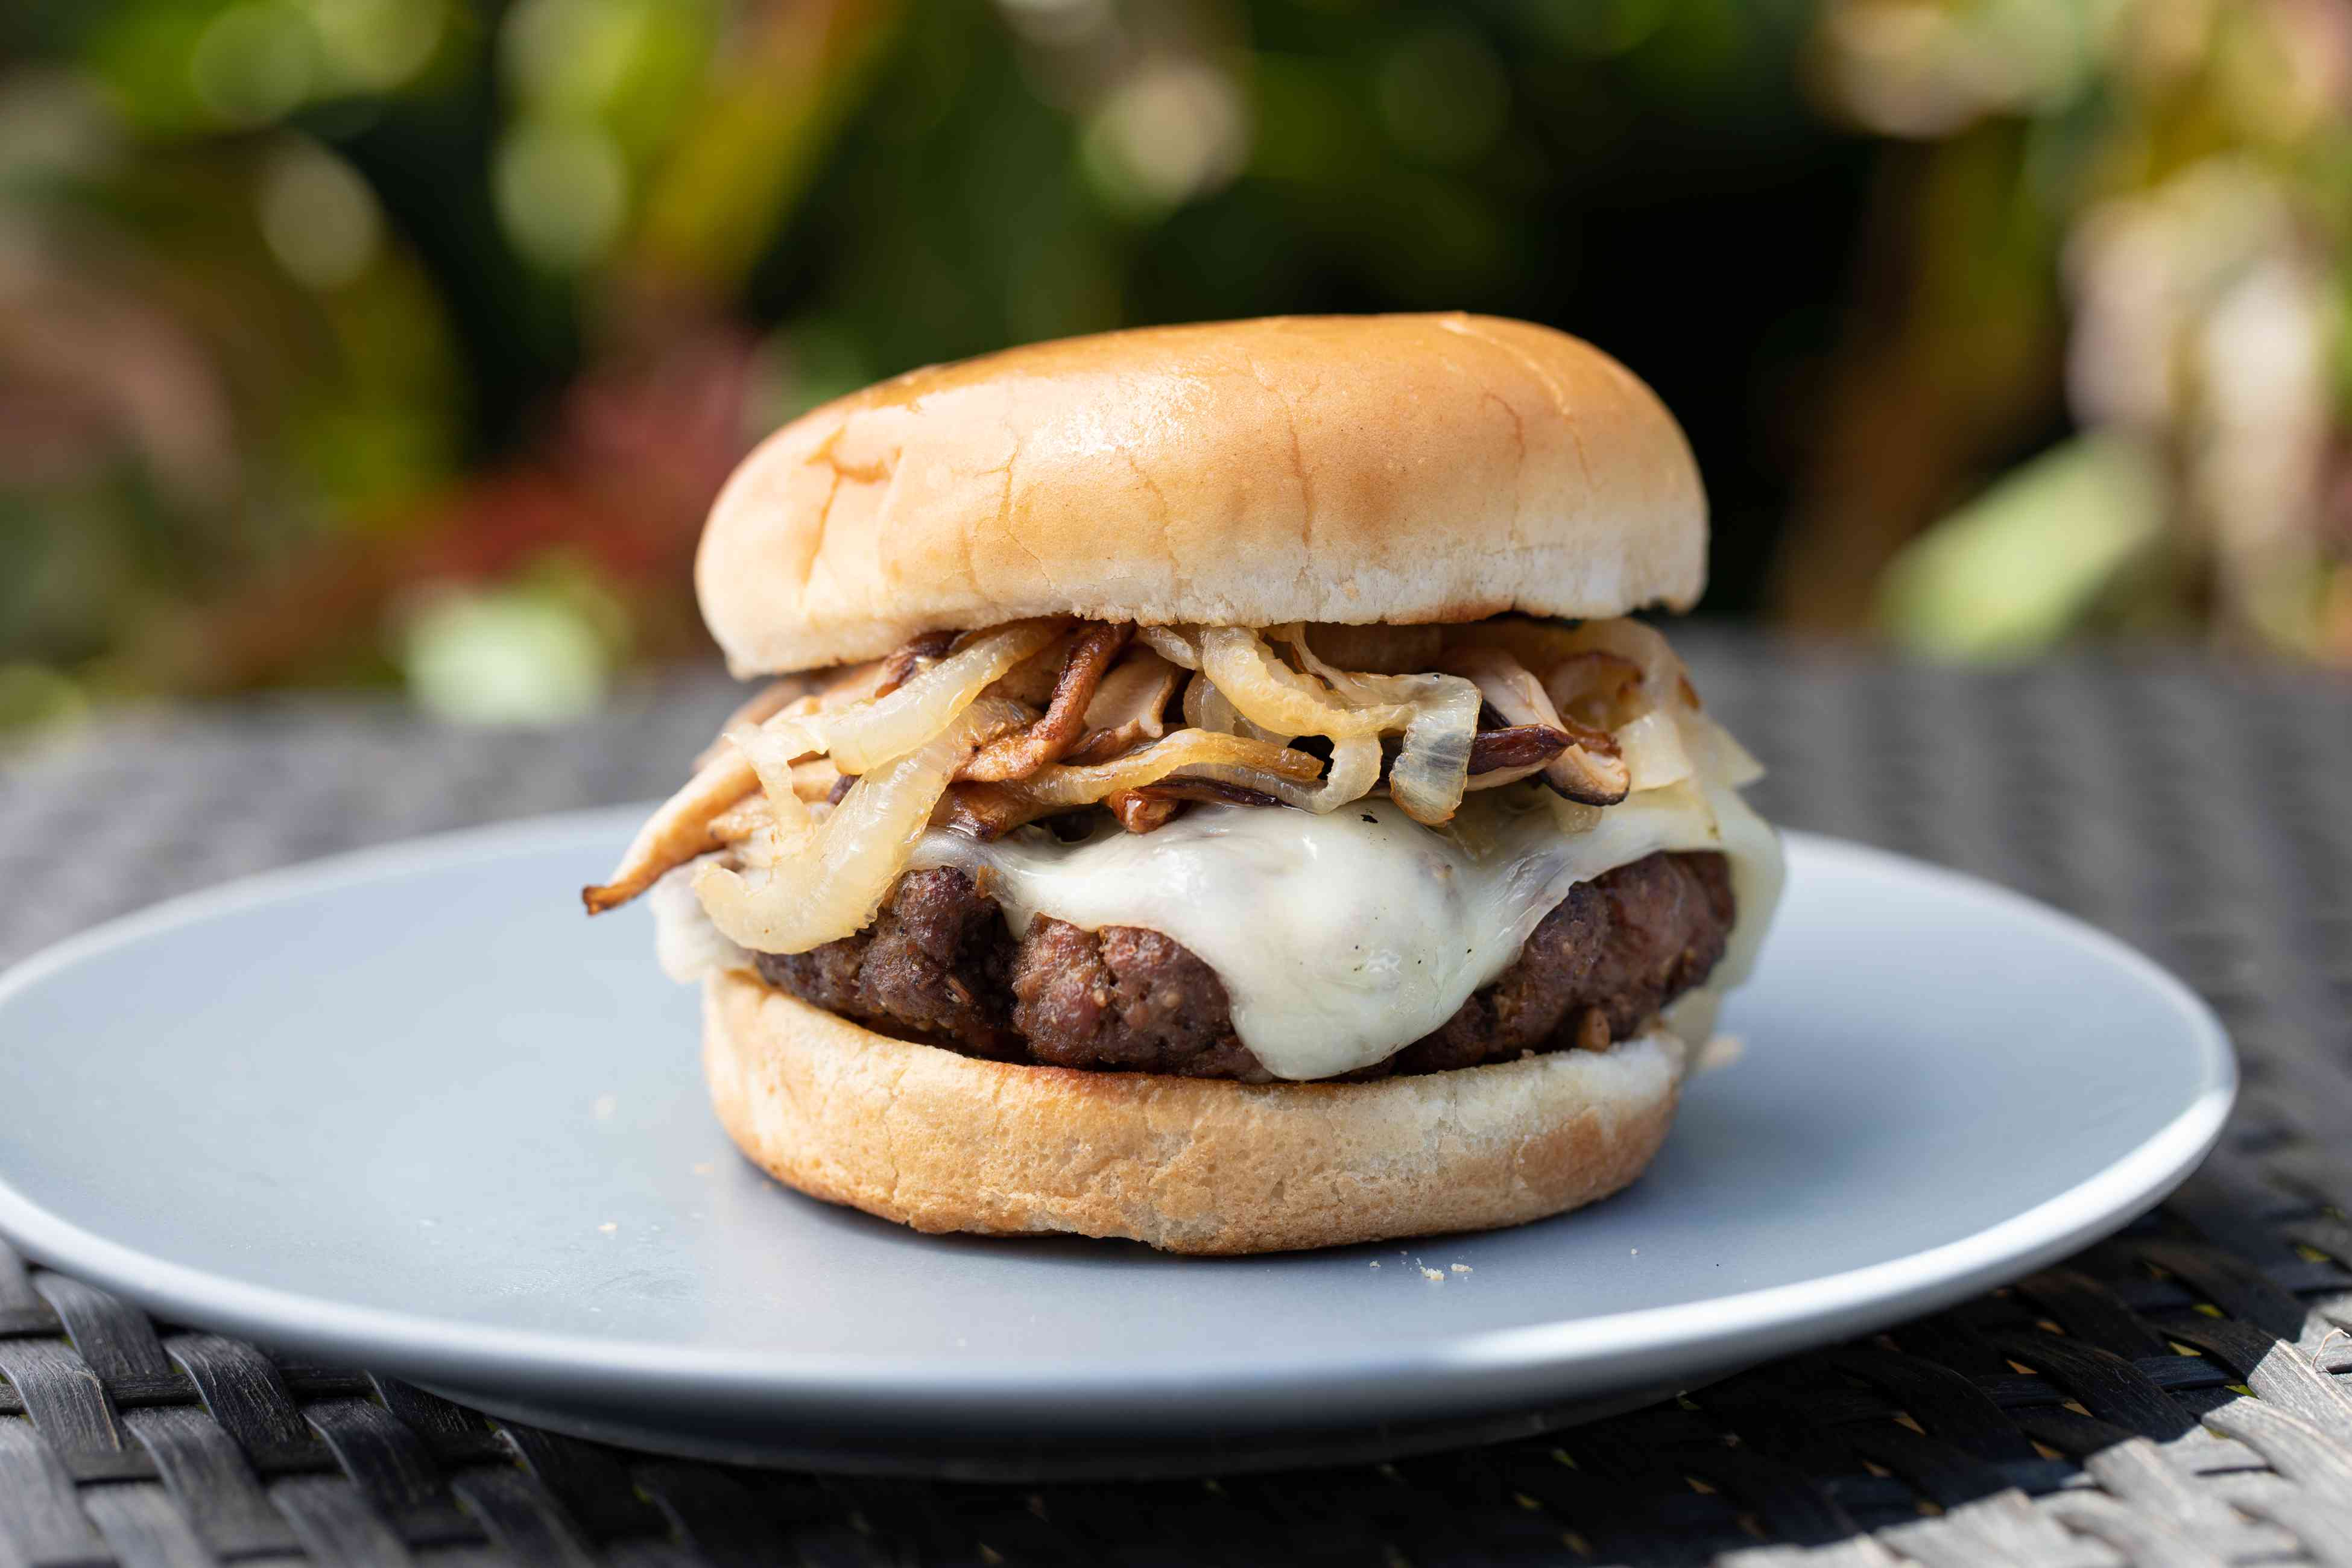 Side view of a mushroom swiss burger on a plate outside.